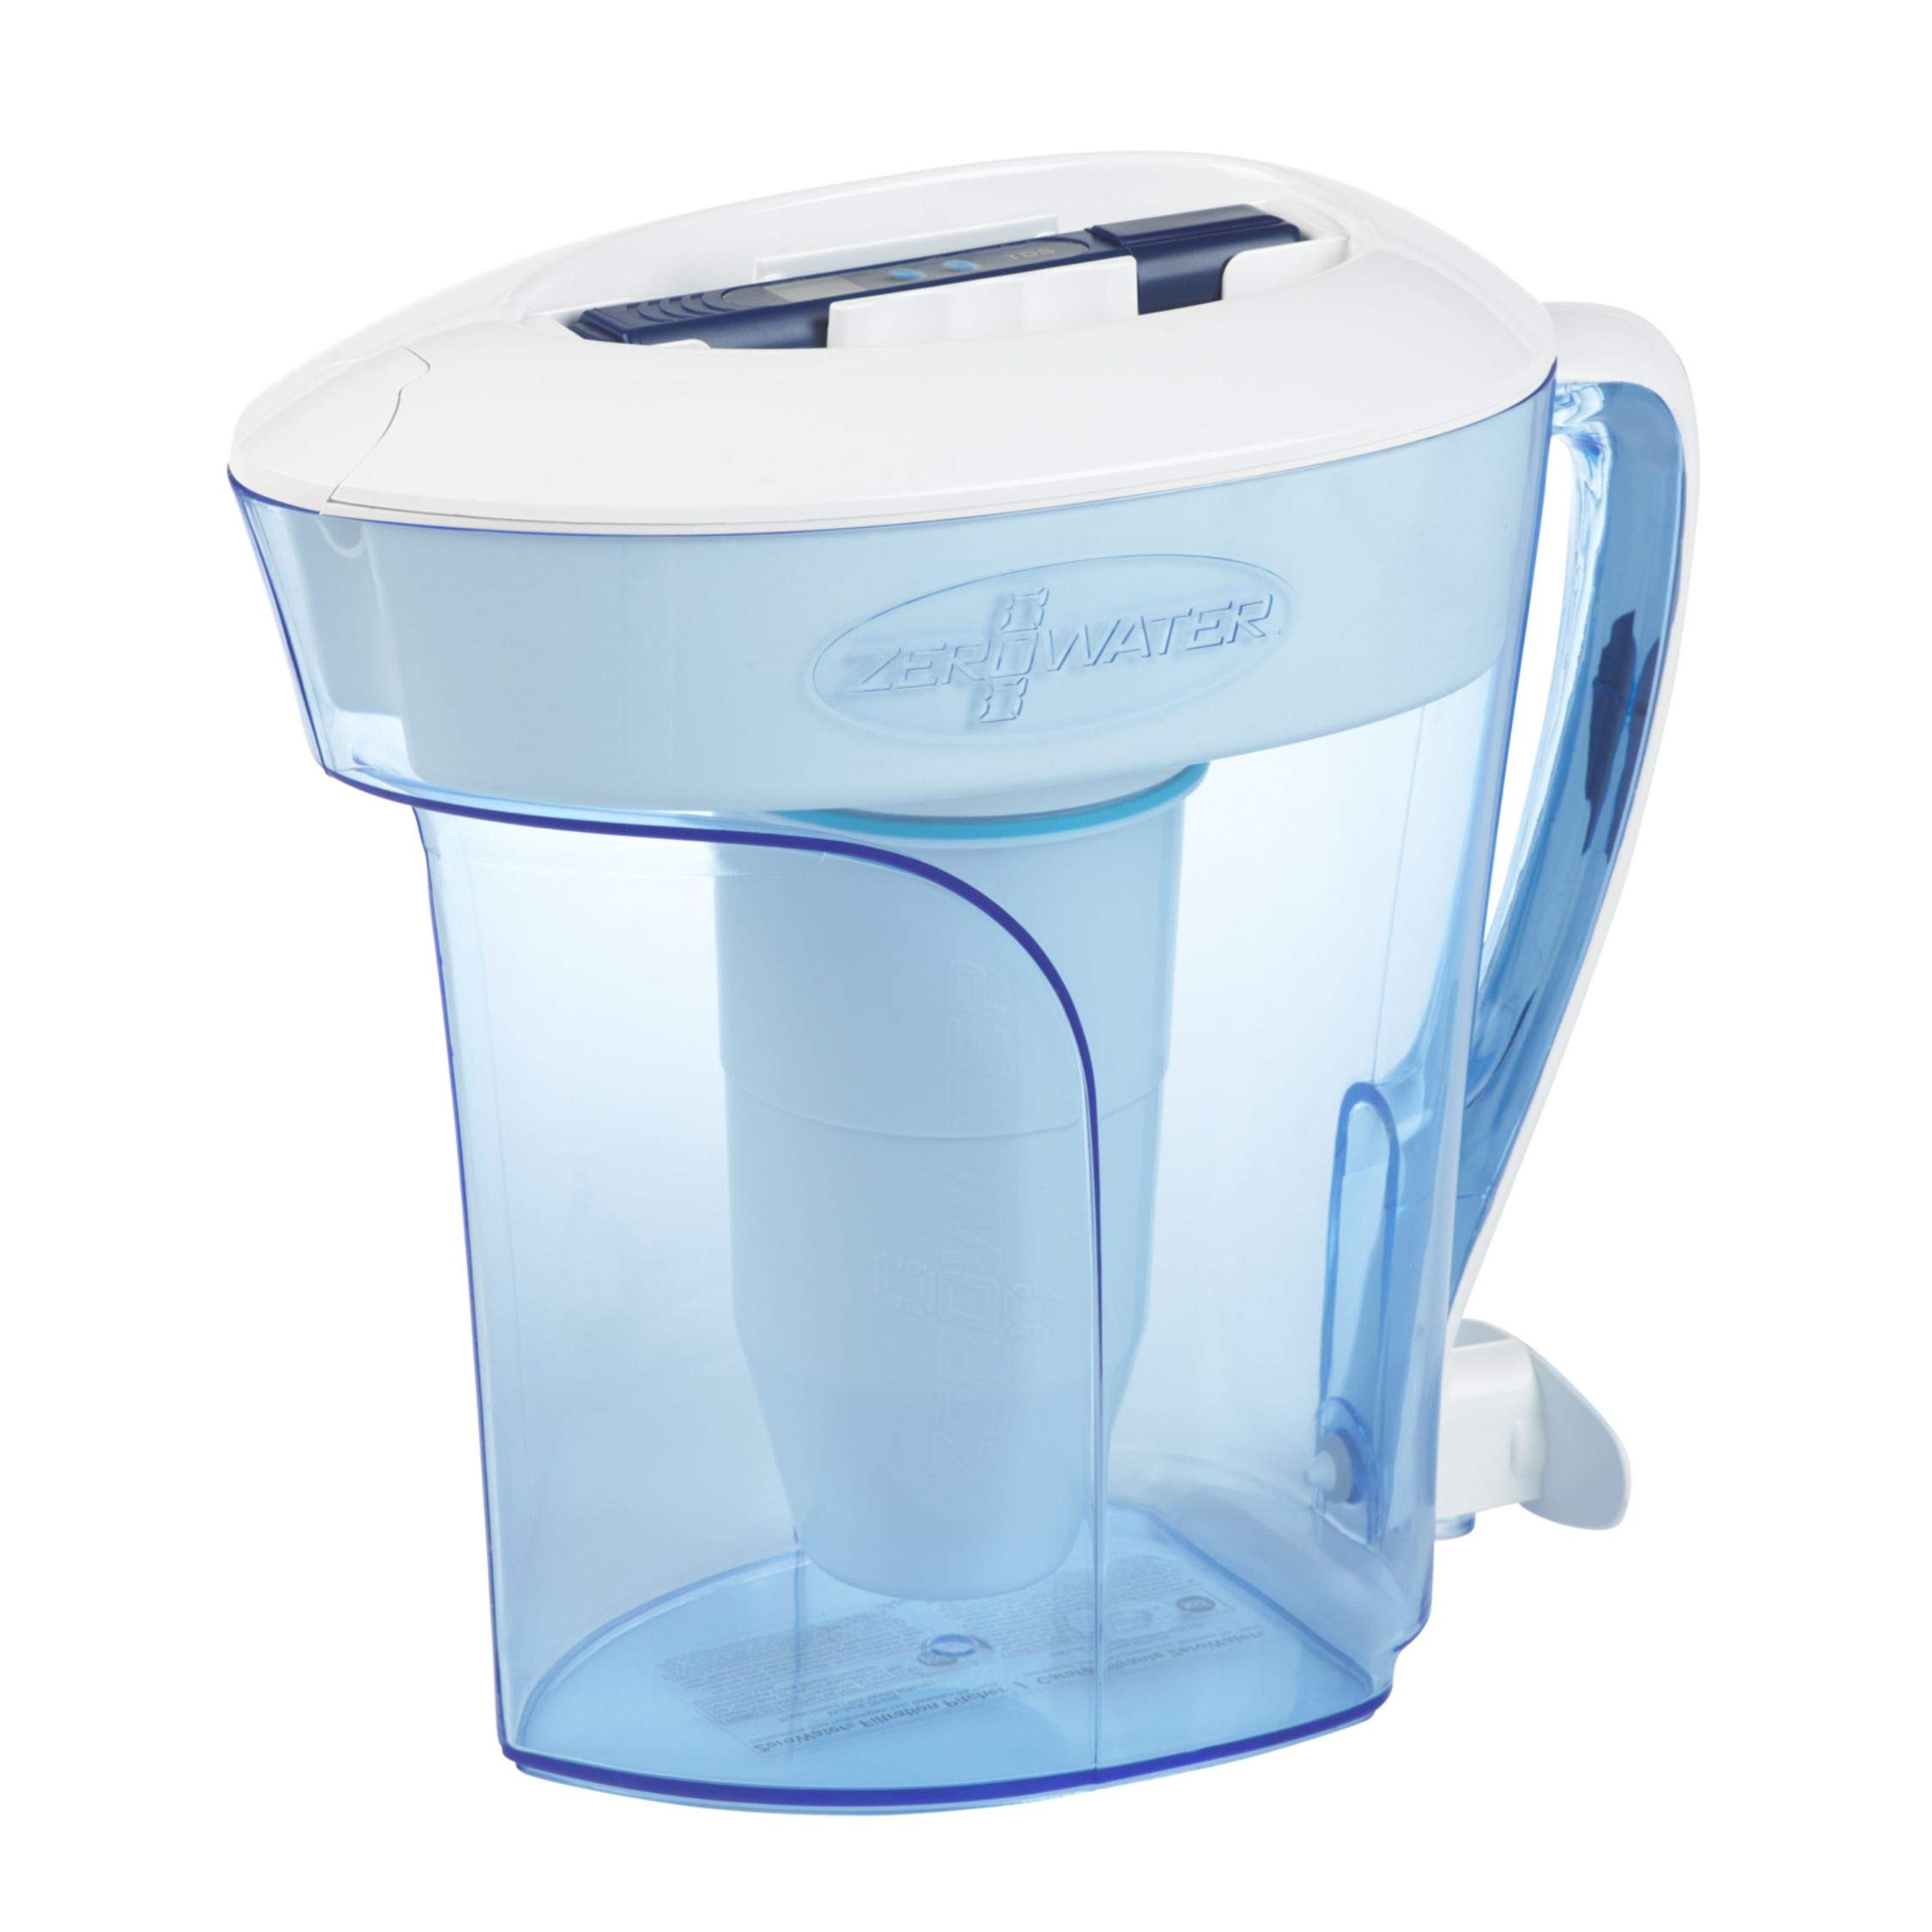 ZeroWater ZP-010, 10 Cup Water Filter Pitcher with Water Quality Meter by ZeroWater